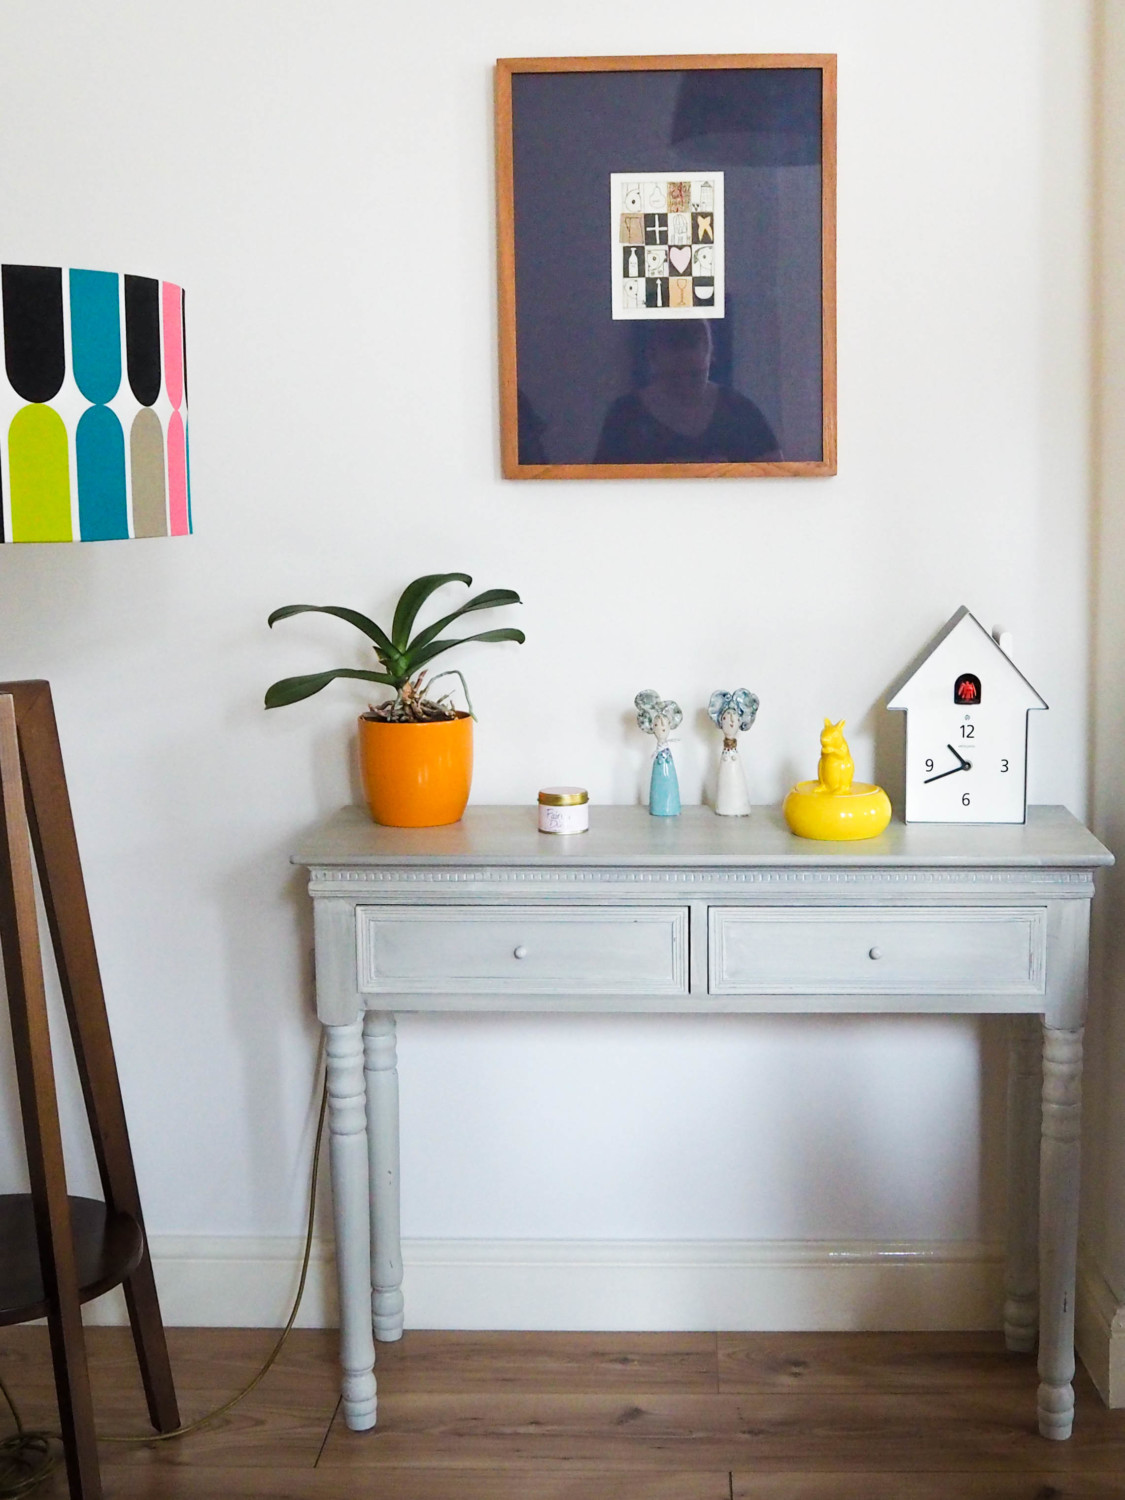 5 storage tips for small spaces